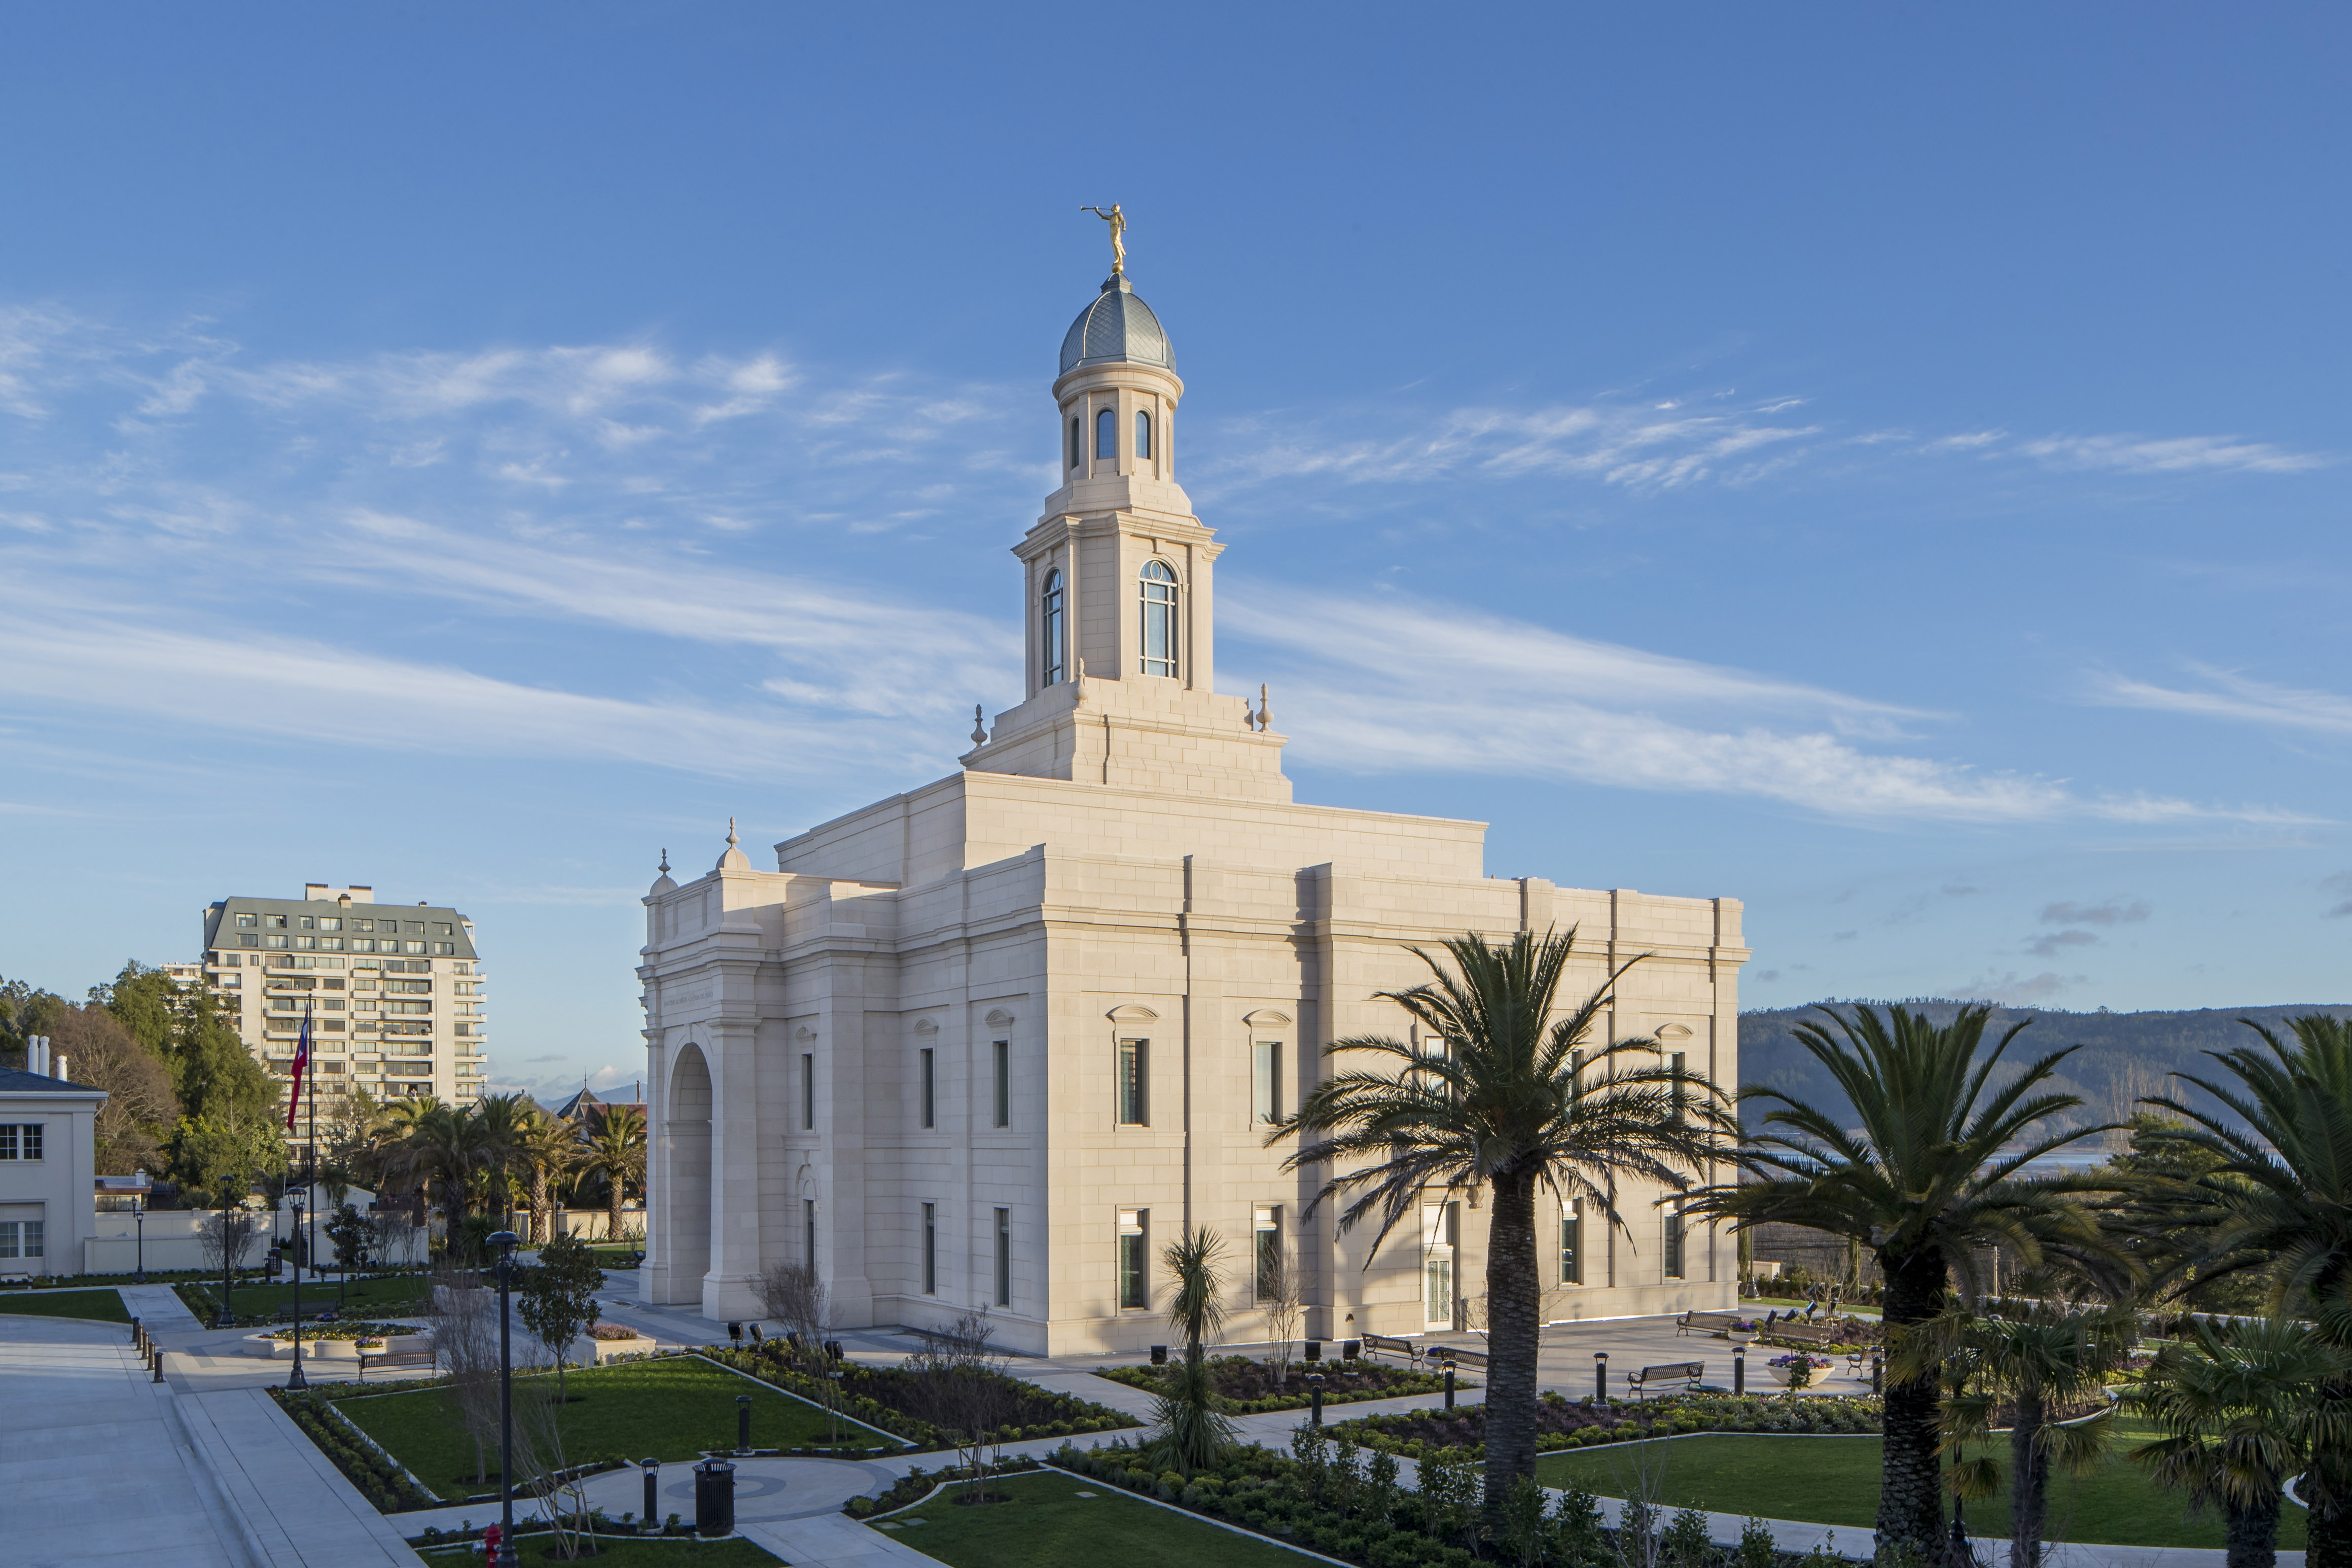 The Concepción Chile Temple.